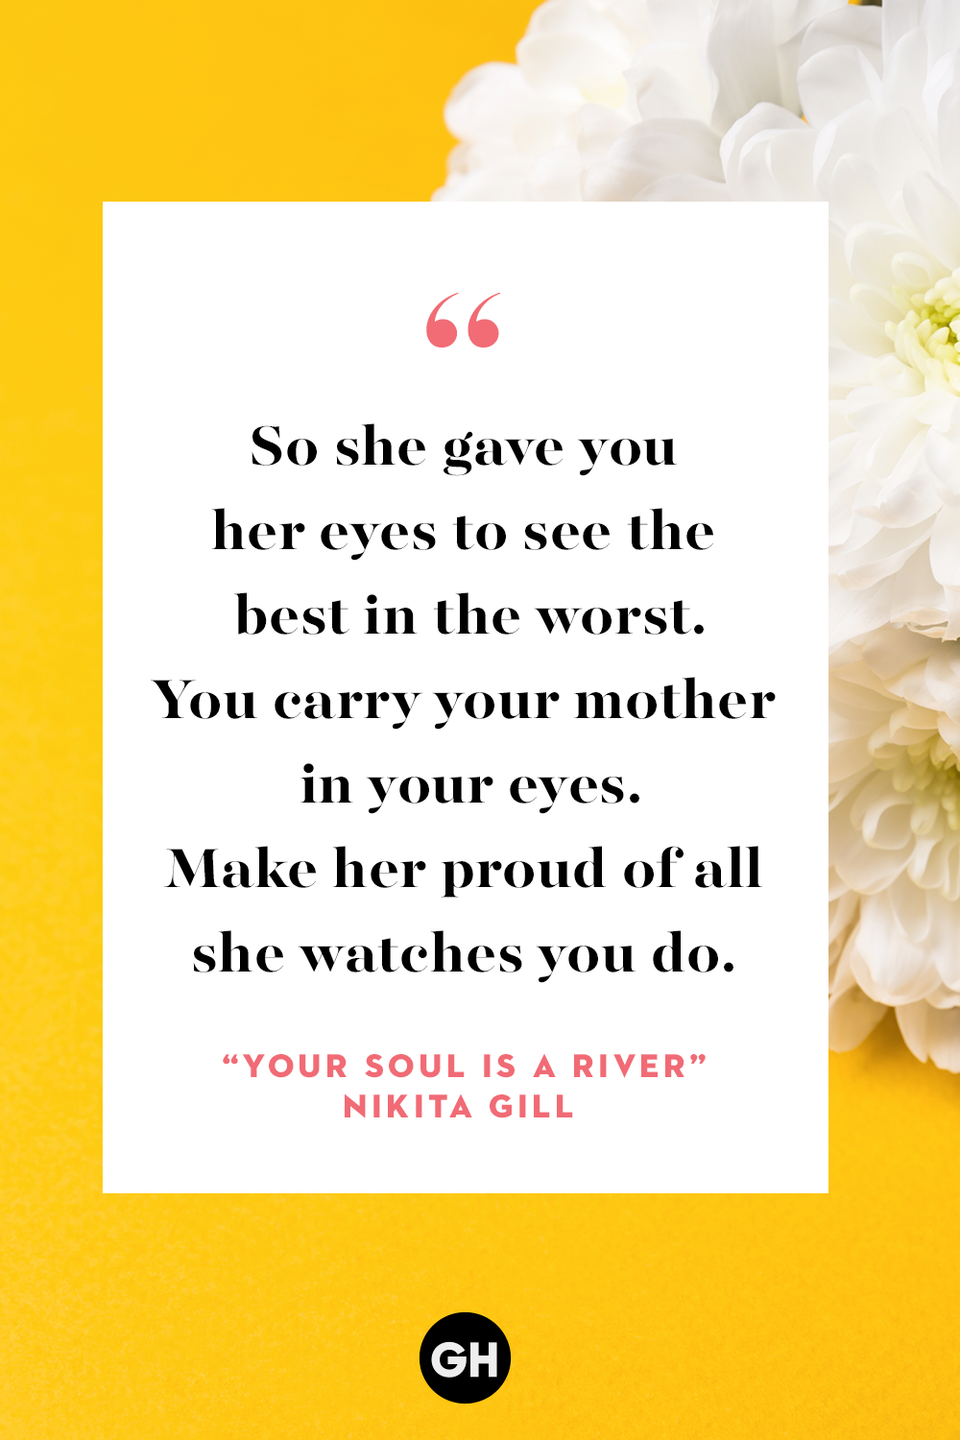 <p>The water of her womb, your first home.</p><p>The body she pulled apart to welcome you to the world.</p><p>The spirit in you she helped grow with all she knew.</p><p>The heart that she gave you when yours fell apart.</p><p>You are her soft miracle.</p><p>So she gave you her eyes to see the best in the worst.</p><p>You carry your mother in your eyes.</p><p>Make her proud of all she watches you do.</p>